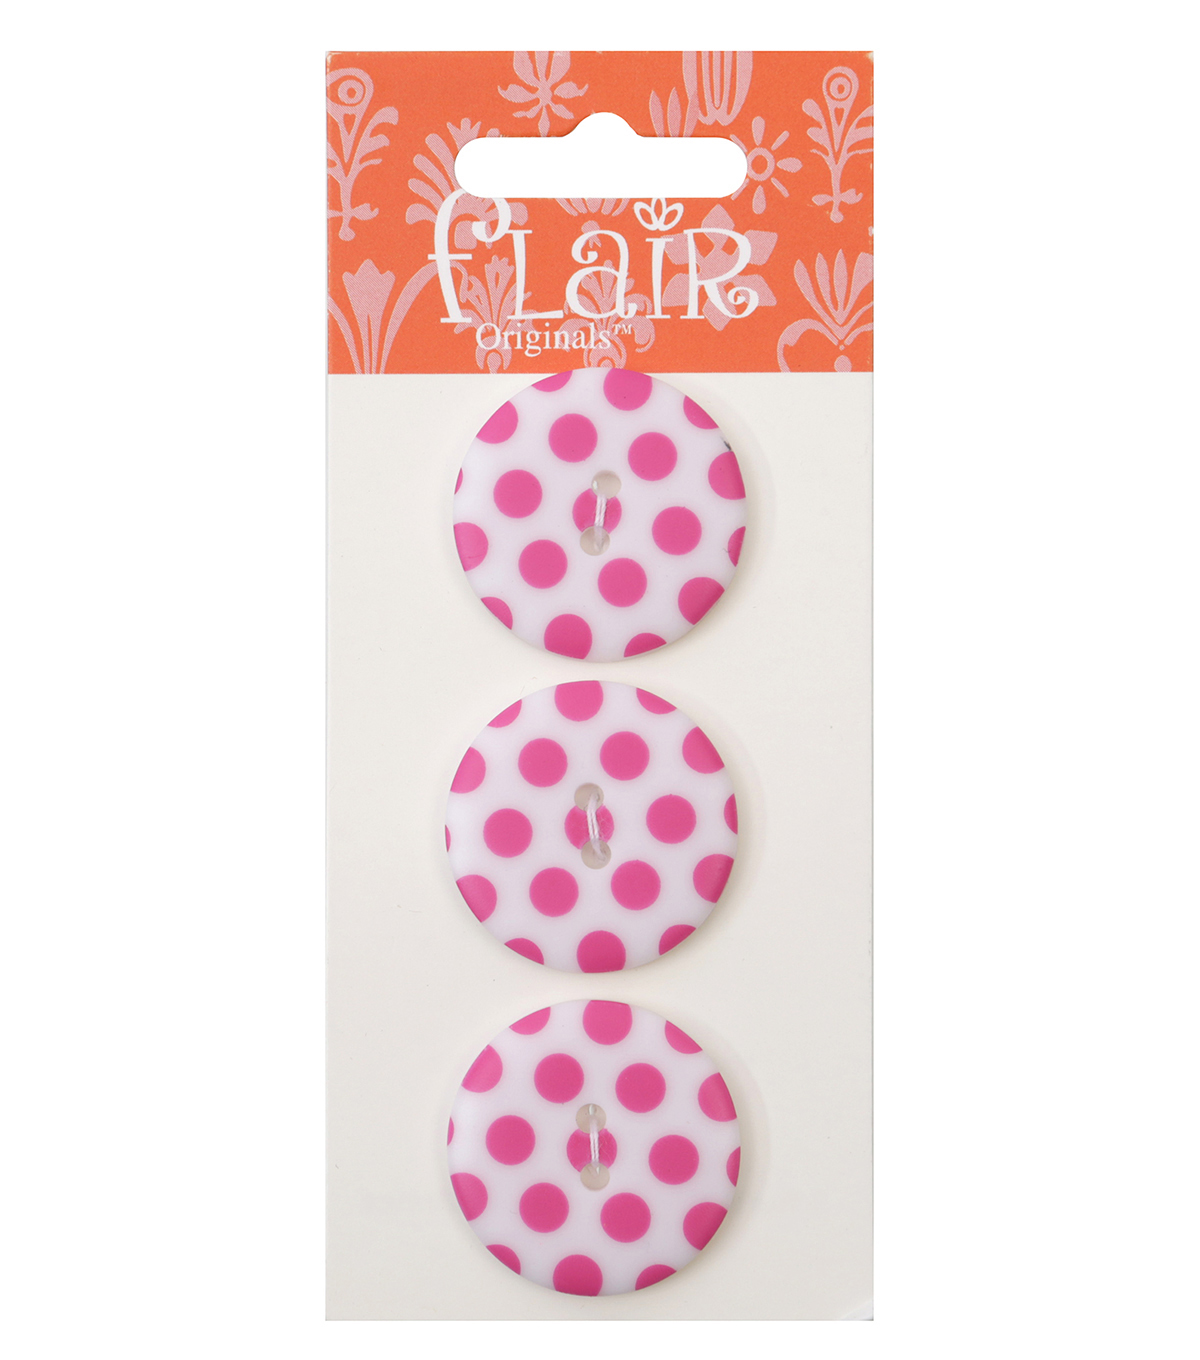 Flair Originals 3 pk 1\u0027\u0027 Buttons-Pink Polka Dots